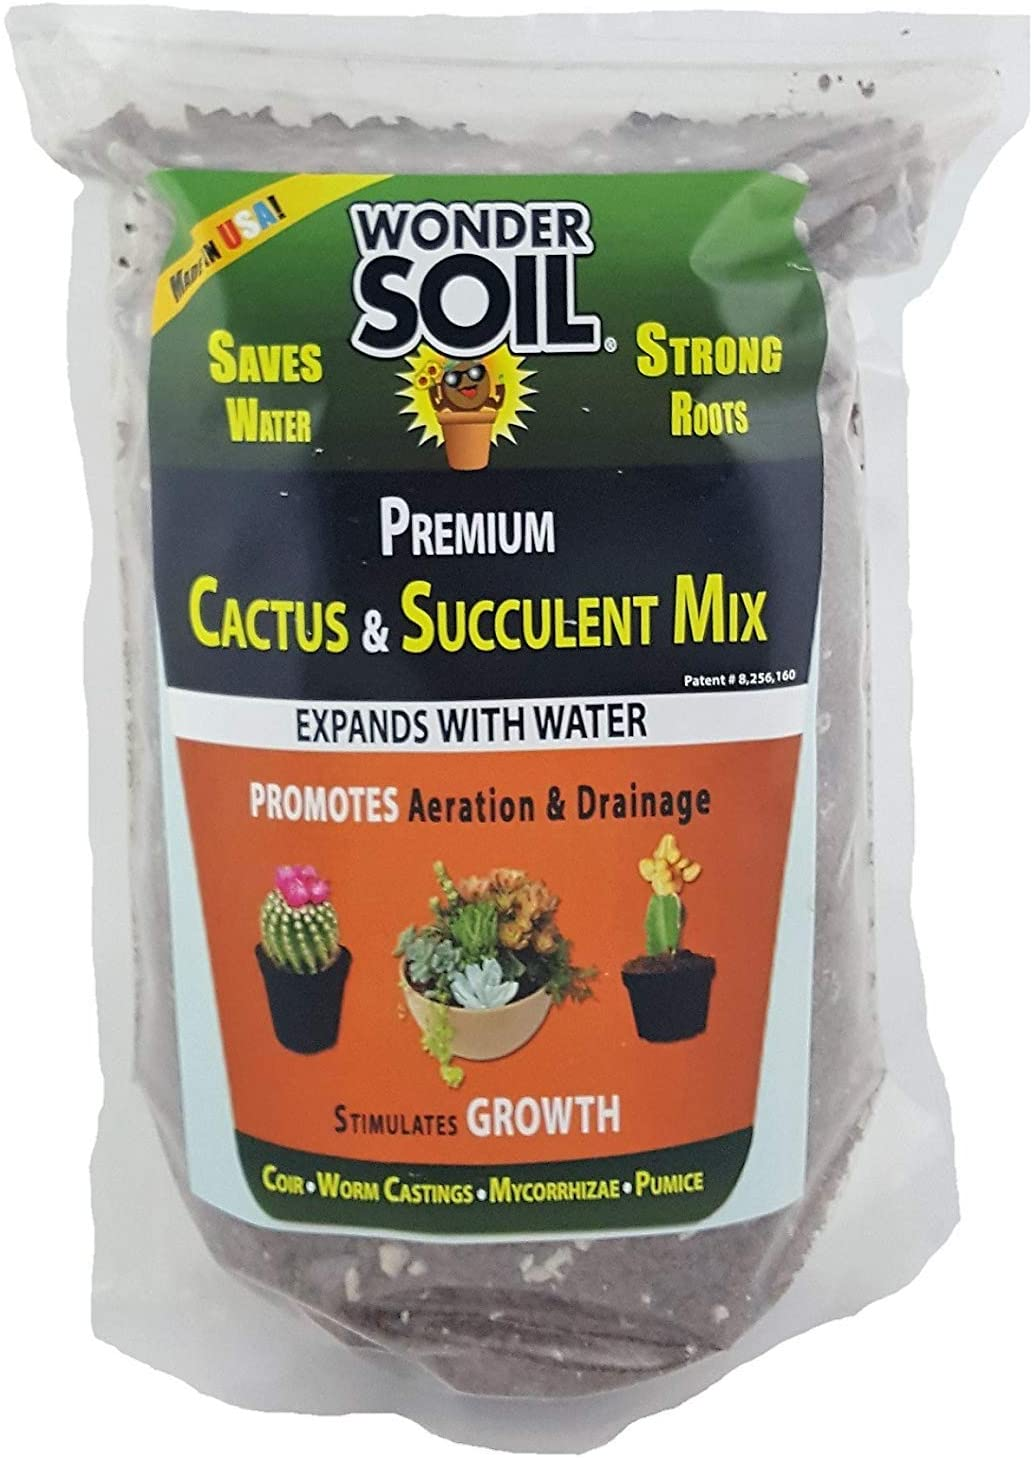 Wonder Soil | Premium Cactus Soil & Succulent Soil Mix. Nutrient Rich Coco Coir Expands 3 Lbs Bag to 12 Quarts of Indoor Outdoor Cactus & Succulent Potting Soil. Incl Worm Castings,Mycorrhizae,Pumice